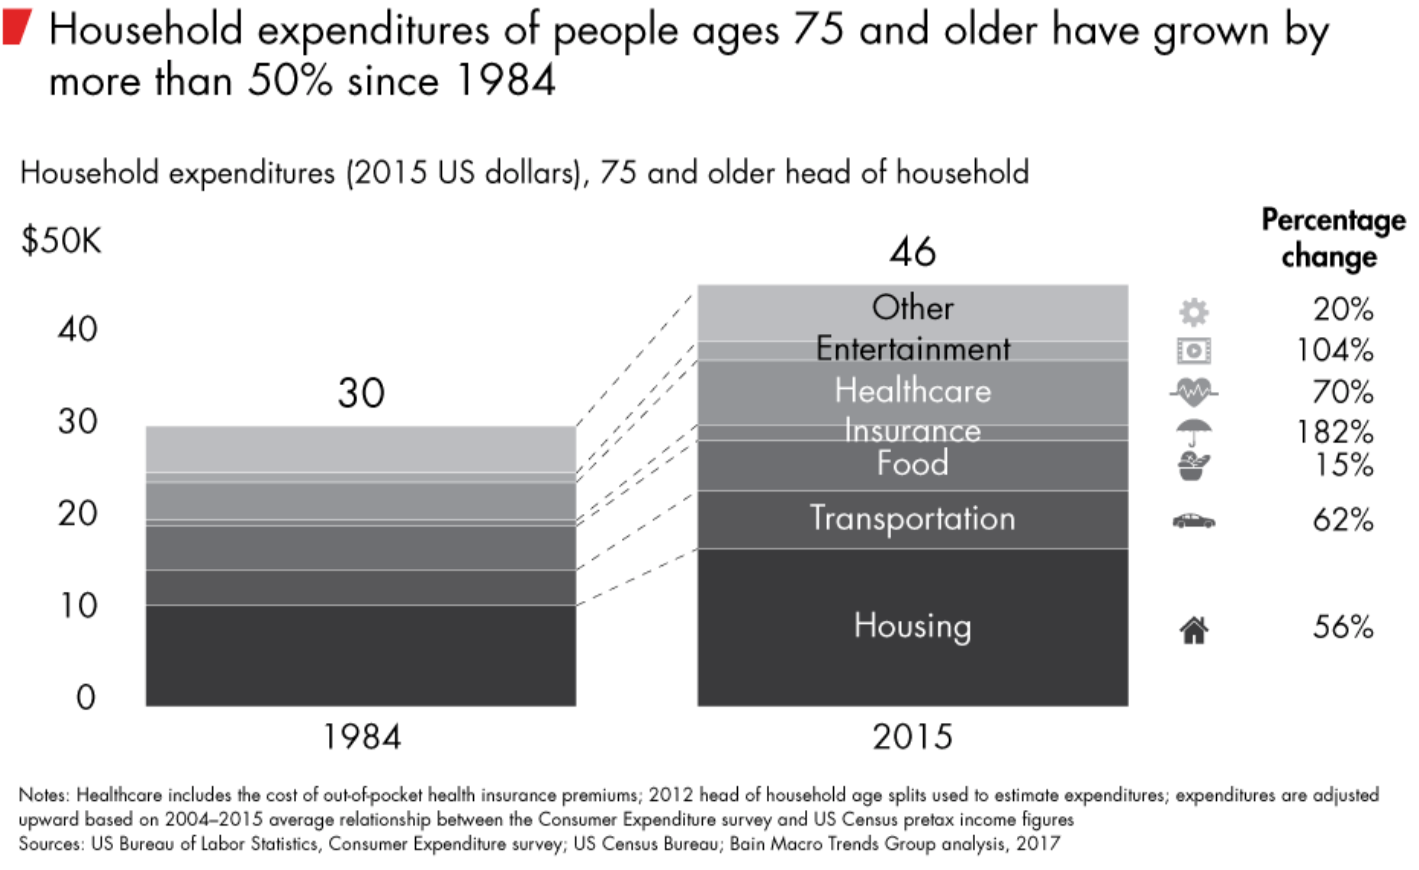 Household expenditures of people ages 75 and older